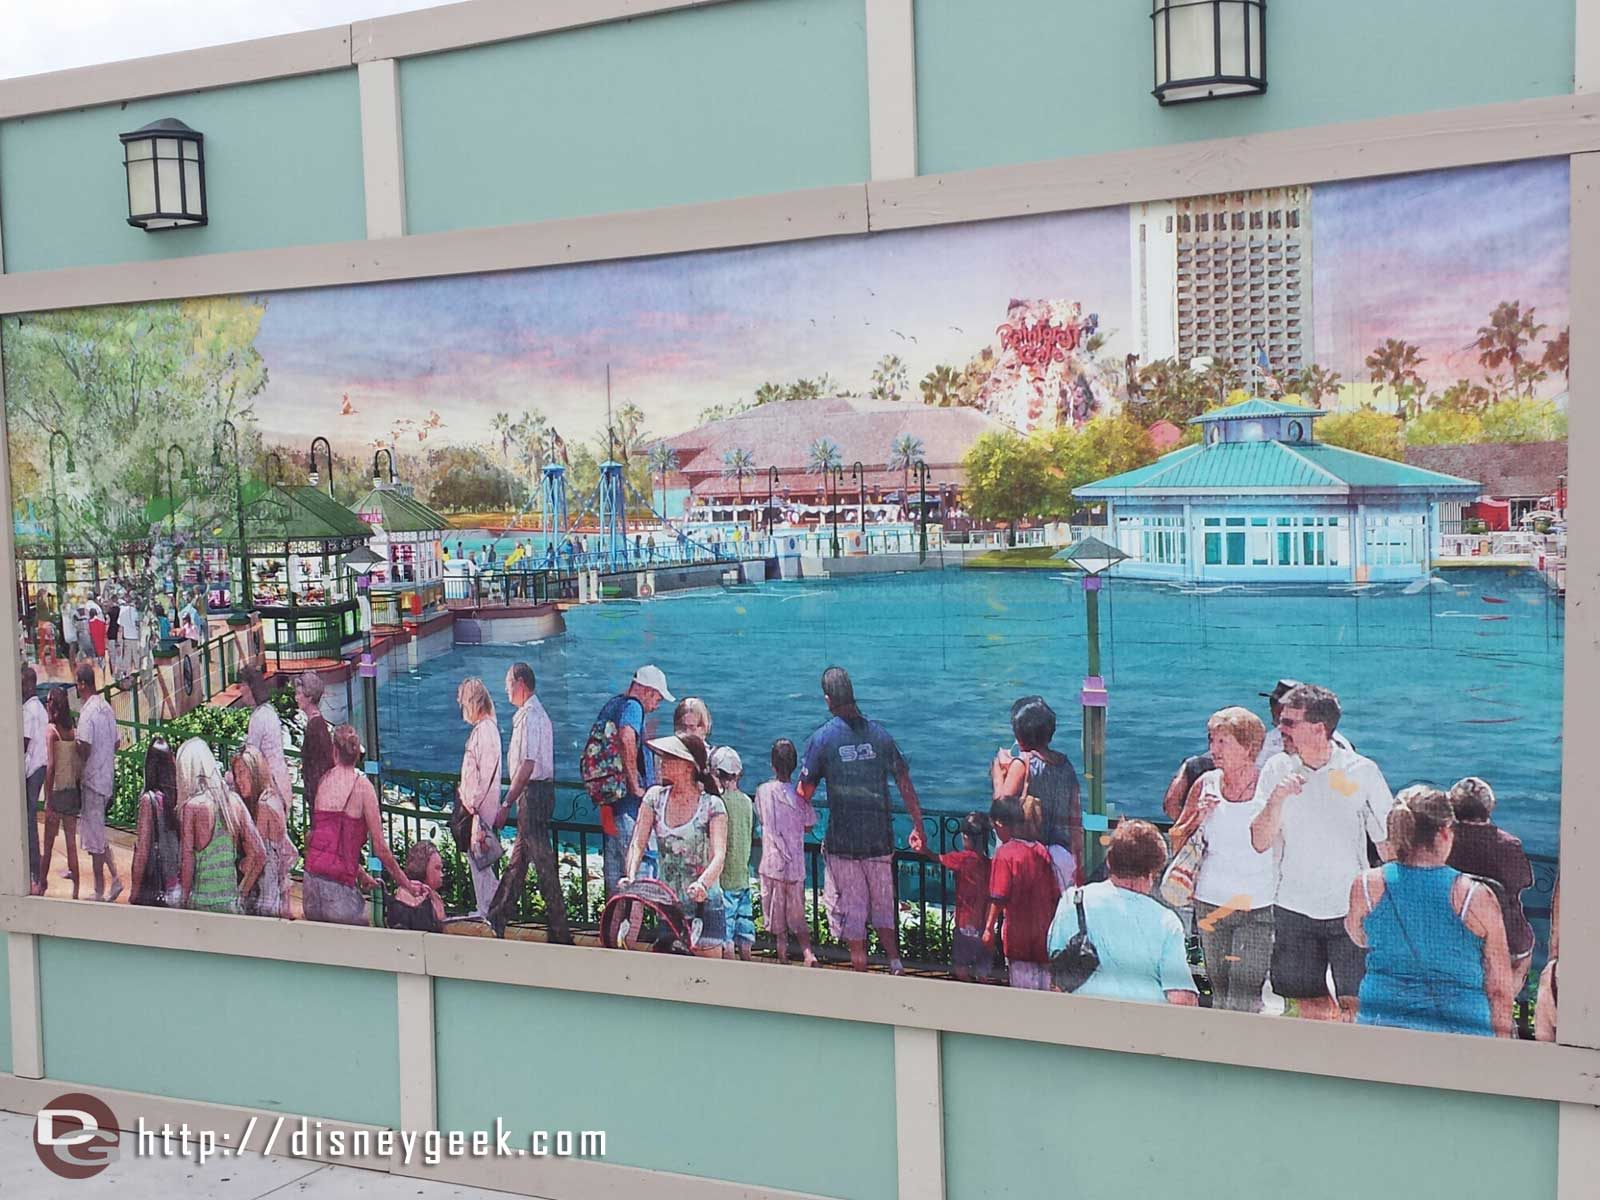 Disney Springs concept art on one of the walls showing what is coming.